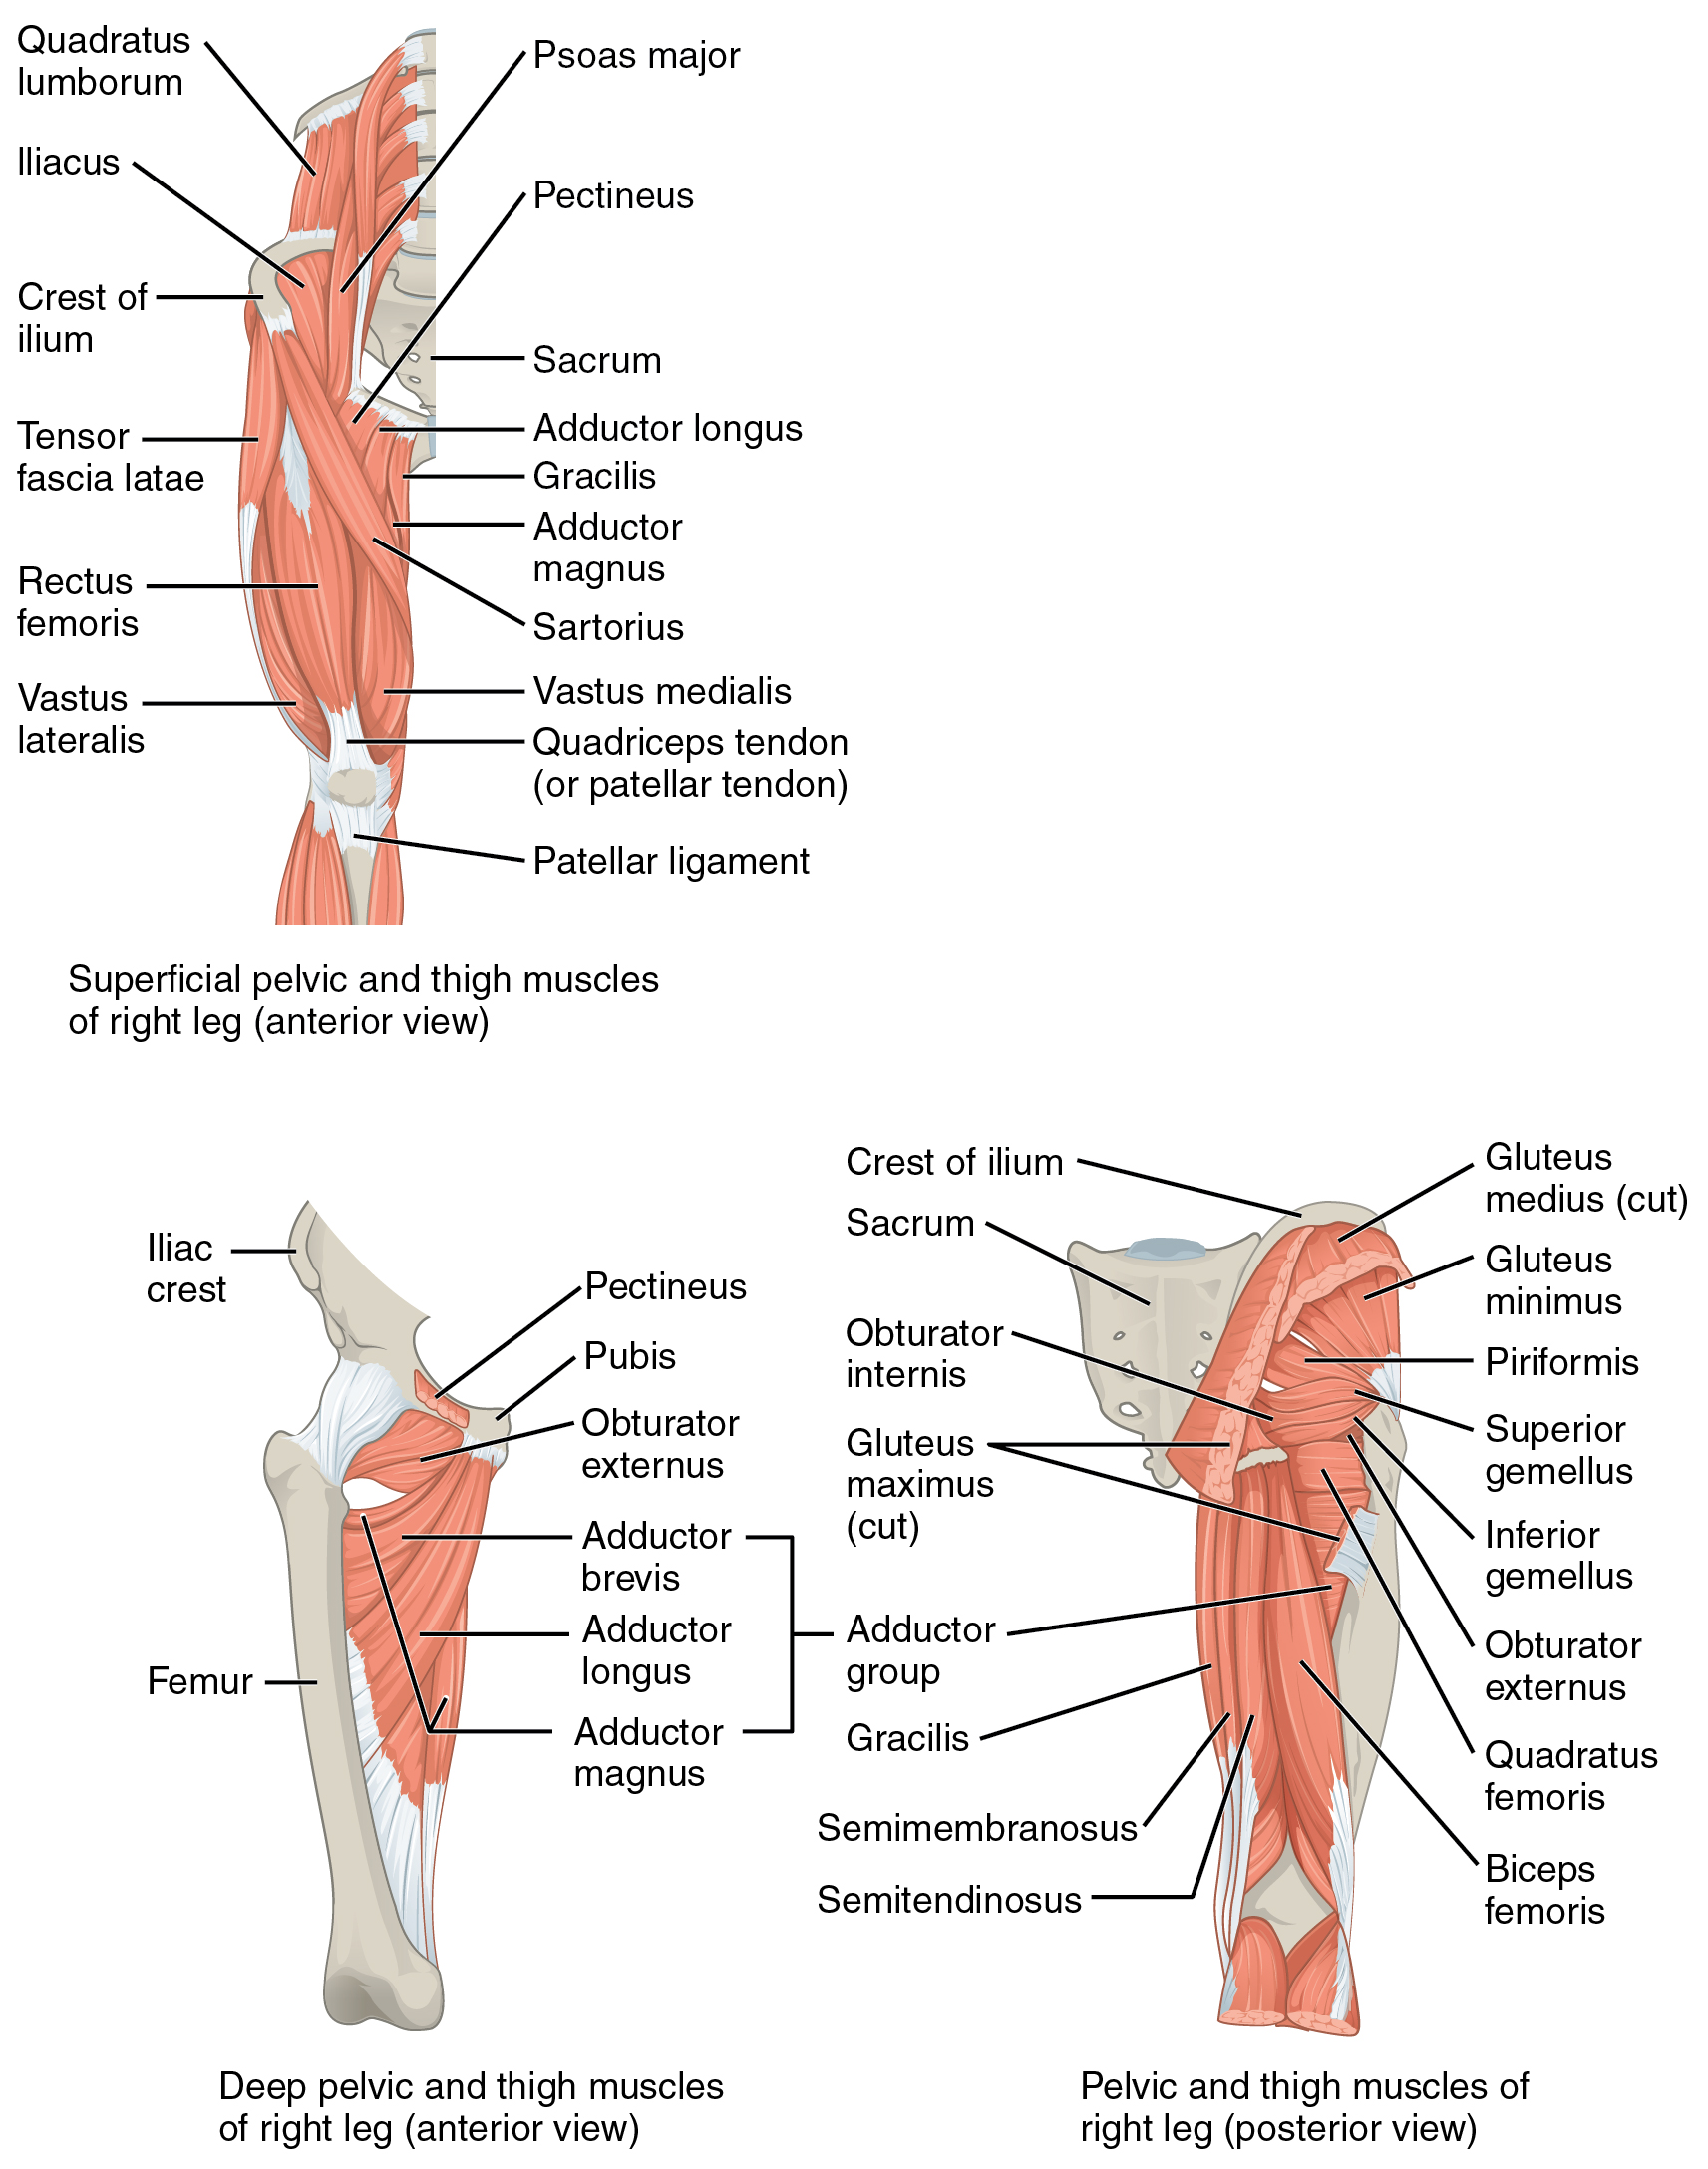 11 6 Appendicular Muscles Of The Pelvic Girdle And Lower Limbs